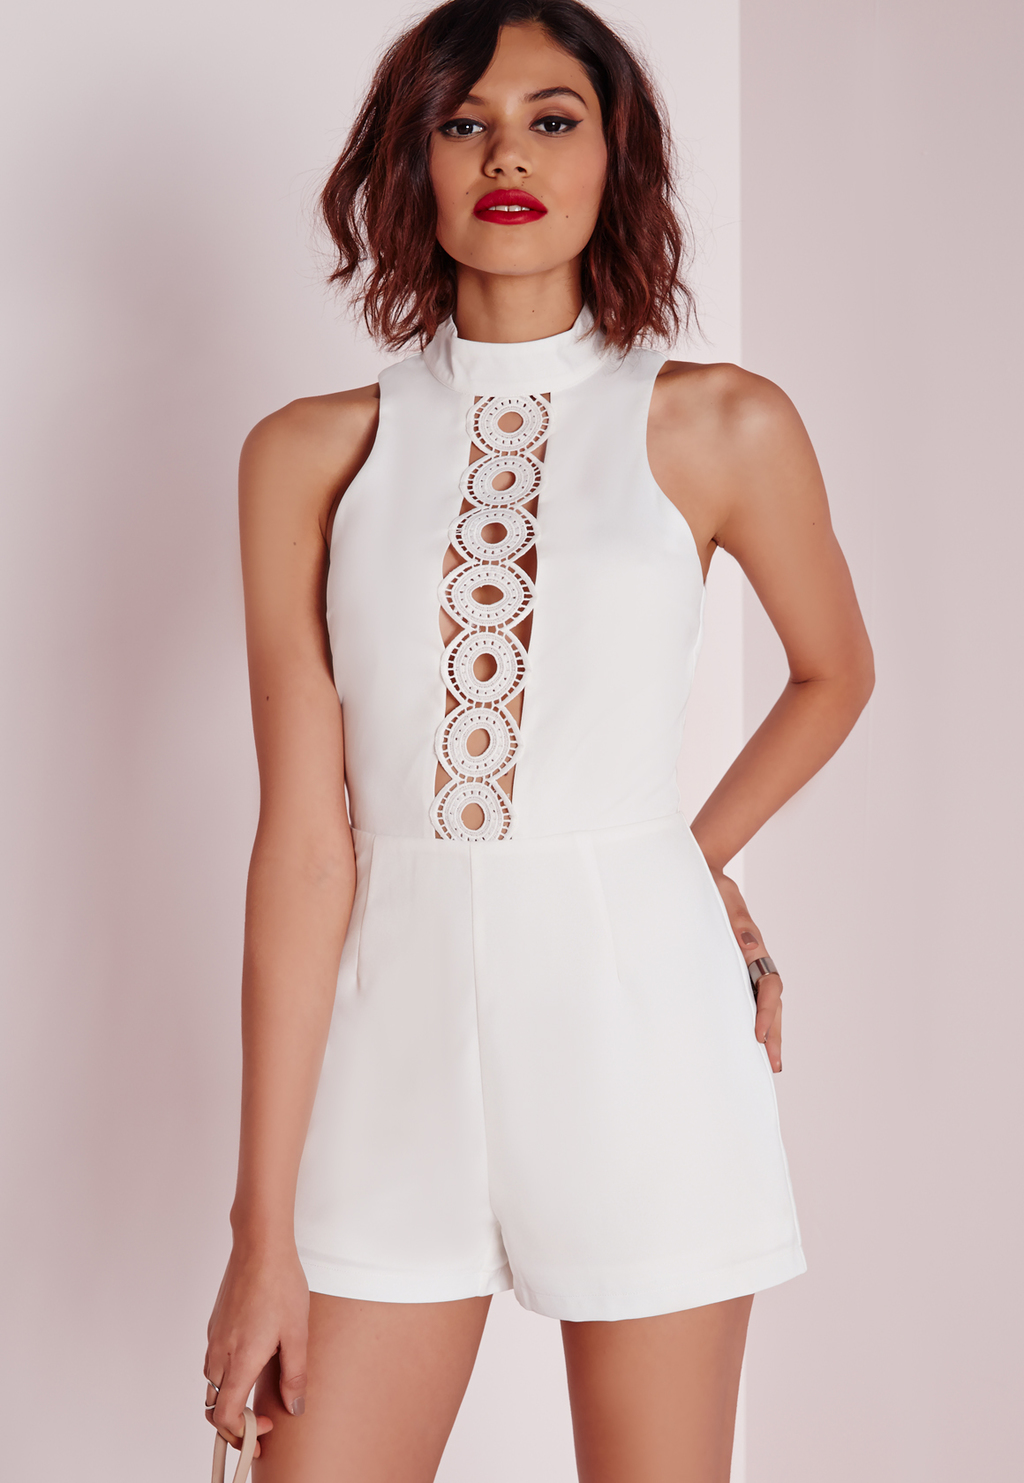 Circle Lace Panel High Neck Playsuit White, White - fit: tailored/fitted; sleeve style: sleeveless; neckline: high neck; length: short shorts; predominant colour: white; occasions: evening; fibres: polyester/polyamide - 100%; sleeve length: sleeveless; texture group: lace; style: playsuit; pattern type: fabric; pattern: patterned/print; embellishment: lace; season: a/w 2015; wardrobe: event